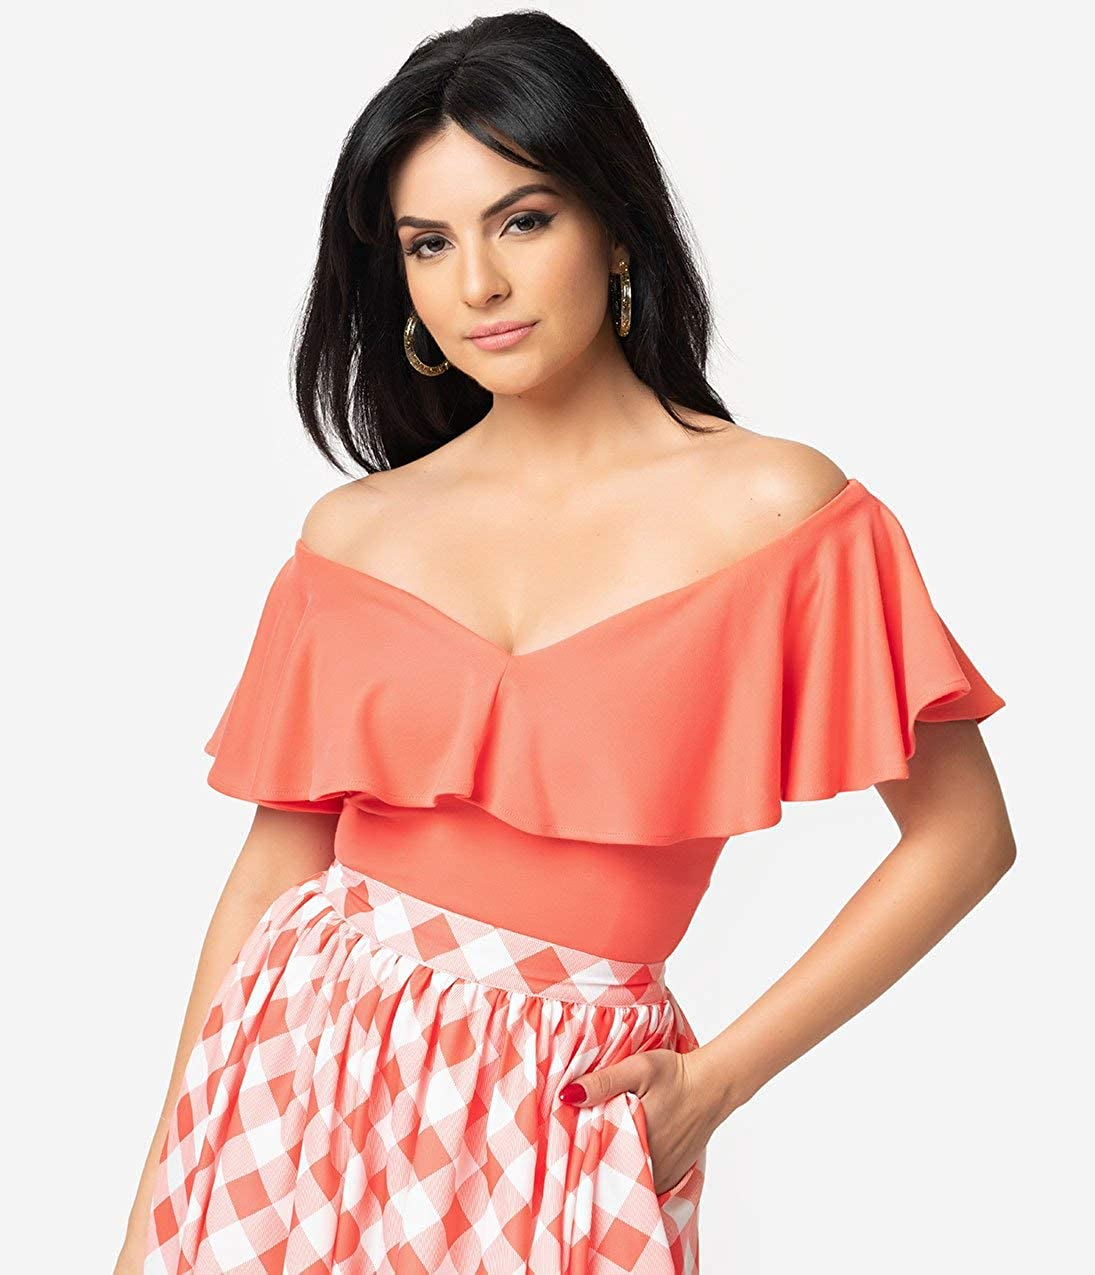 bddb7ecae211 Unique Vintage + Pantone 1950s Living Coral Off Shoulder Ruffle Frenchie  Top at Amazon Women s Clothing store